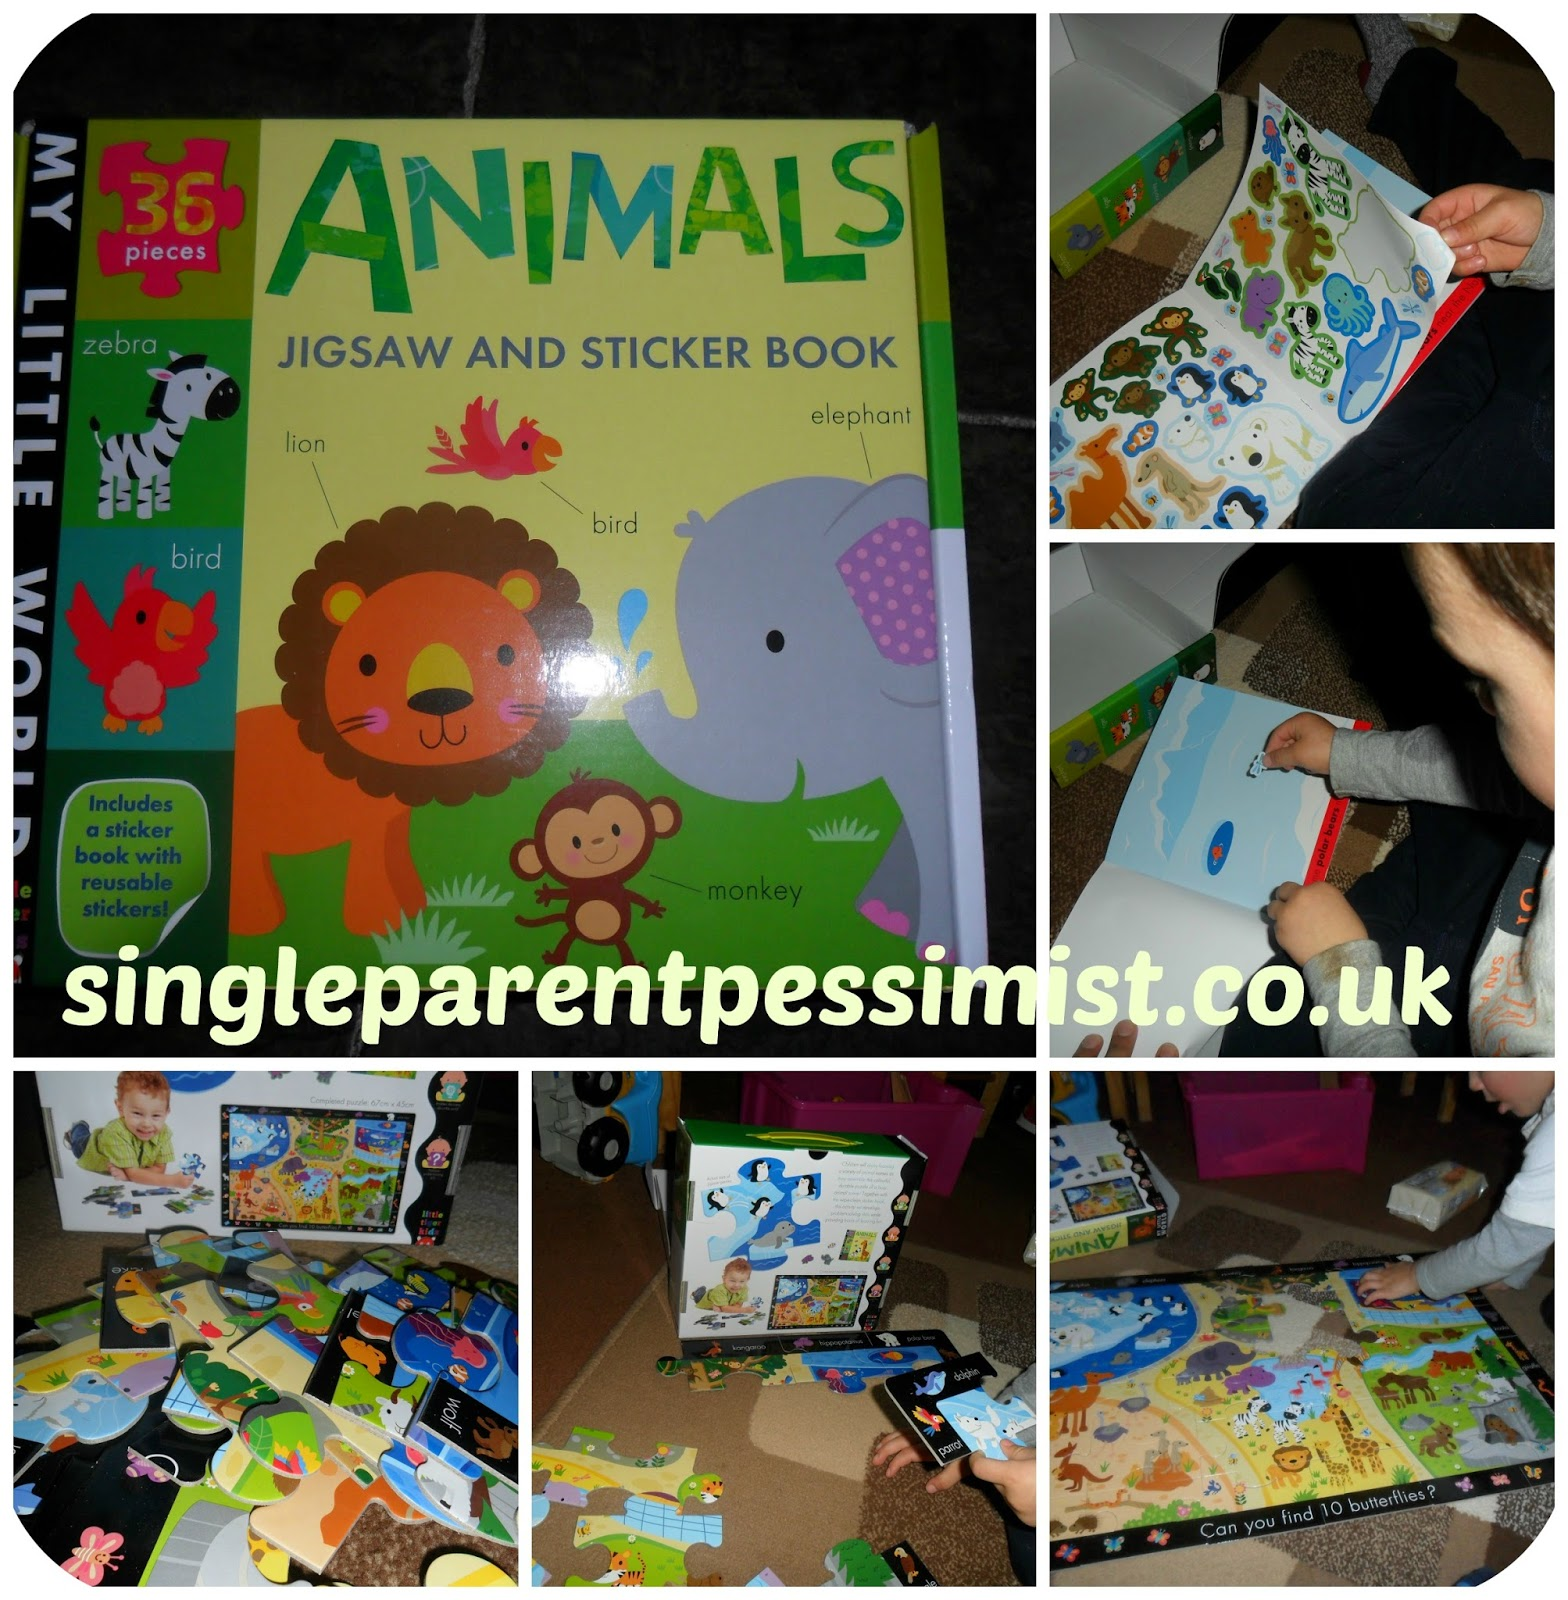 little tiger kids animal jigsaw and sticker book